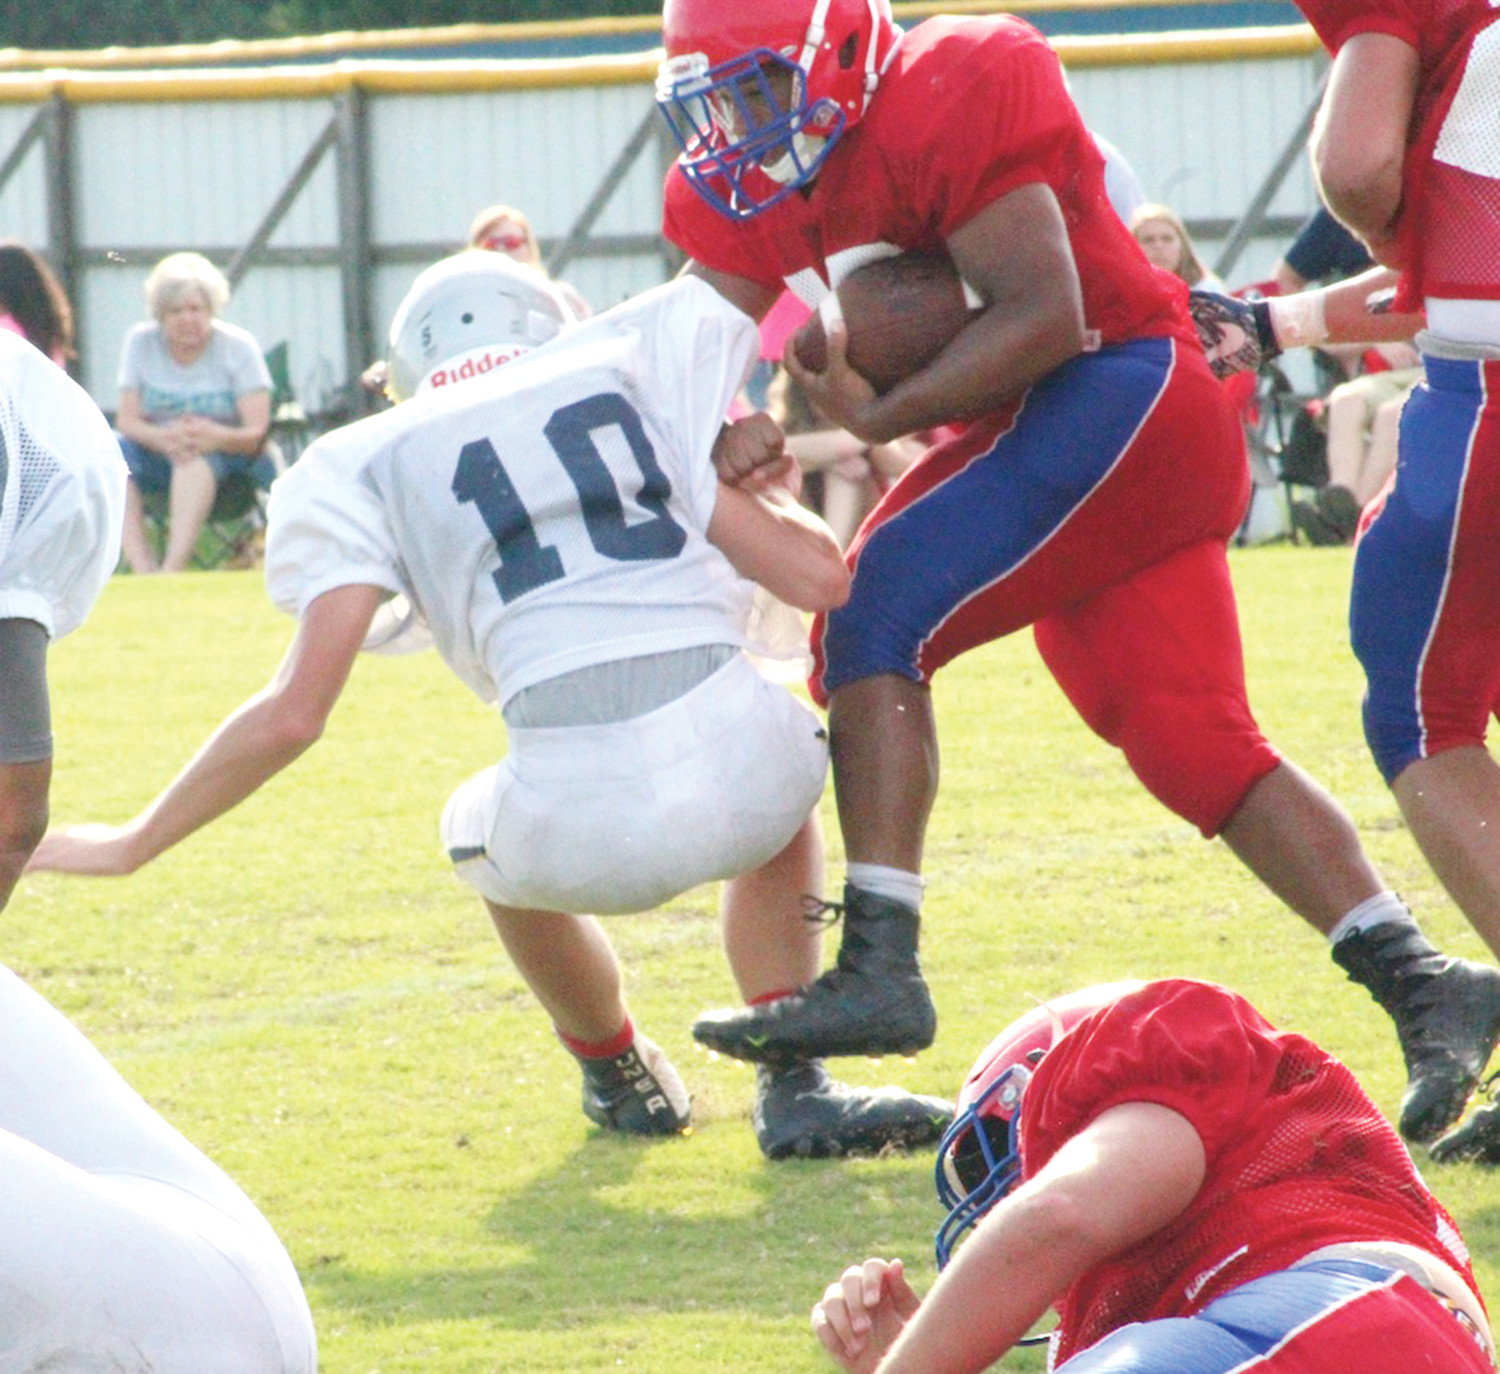 POLK COUNTY fullback Eddie Lamb plows through a Walker Valley defender during a scrimmage Tuesday evening.